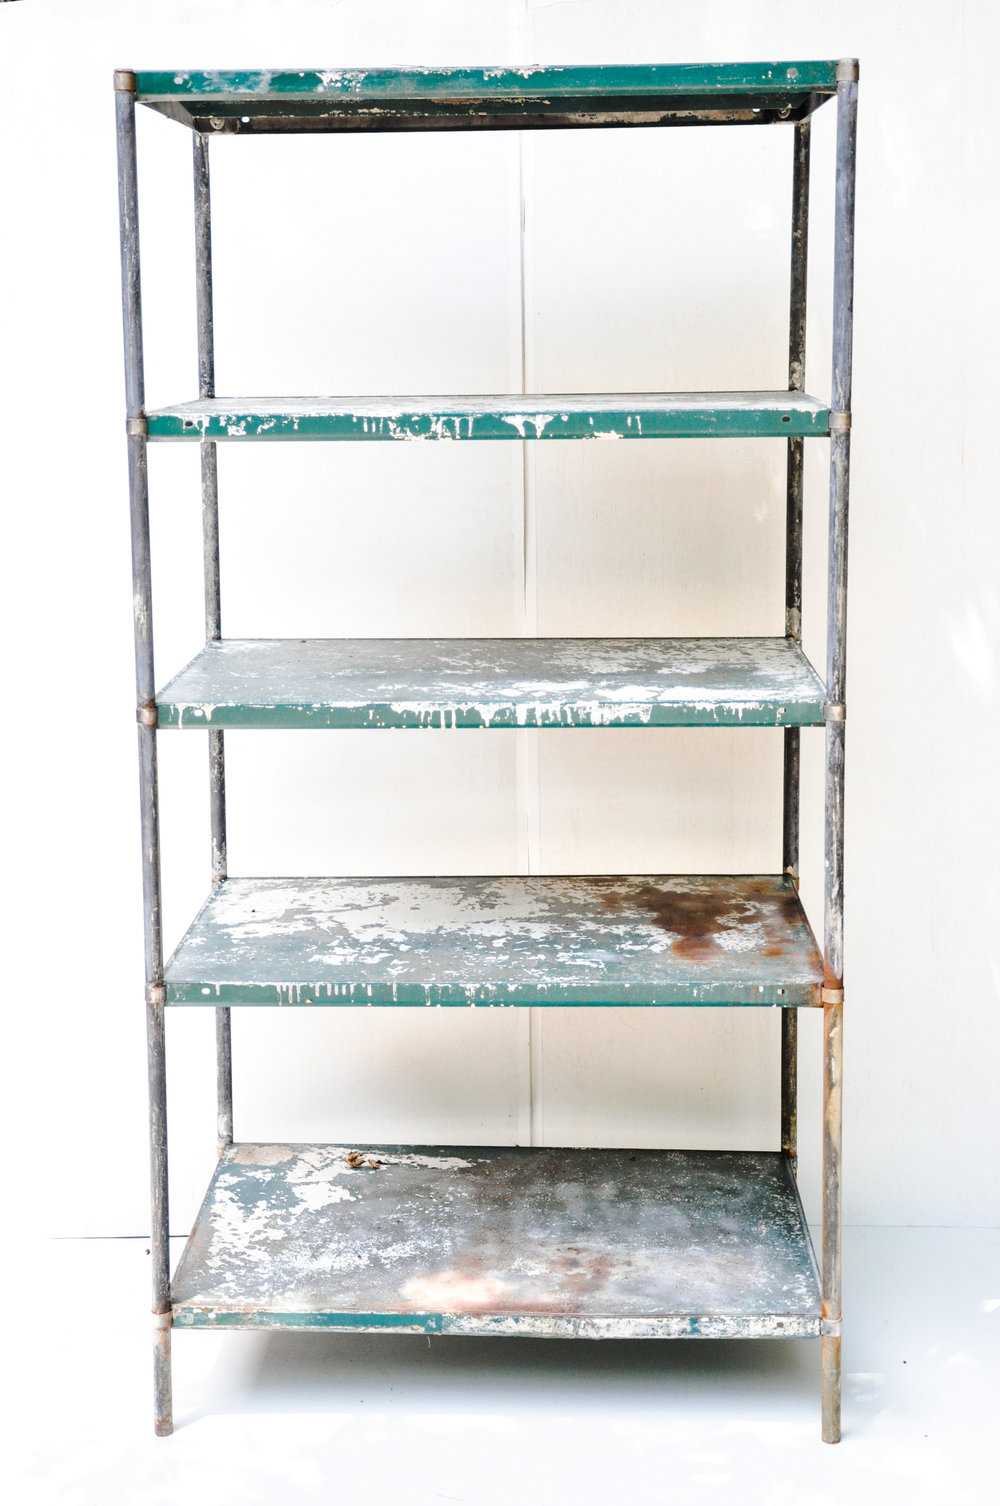 southern vintagelarge vintage accents and detailsindustrial metal rh sovintagega com vintage metal shelving vintage metal kitchen shelves